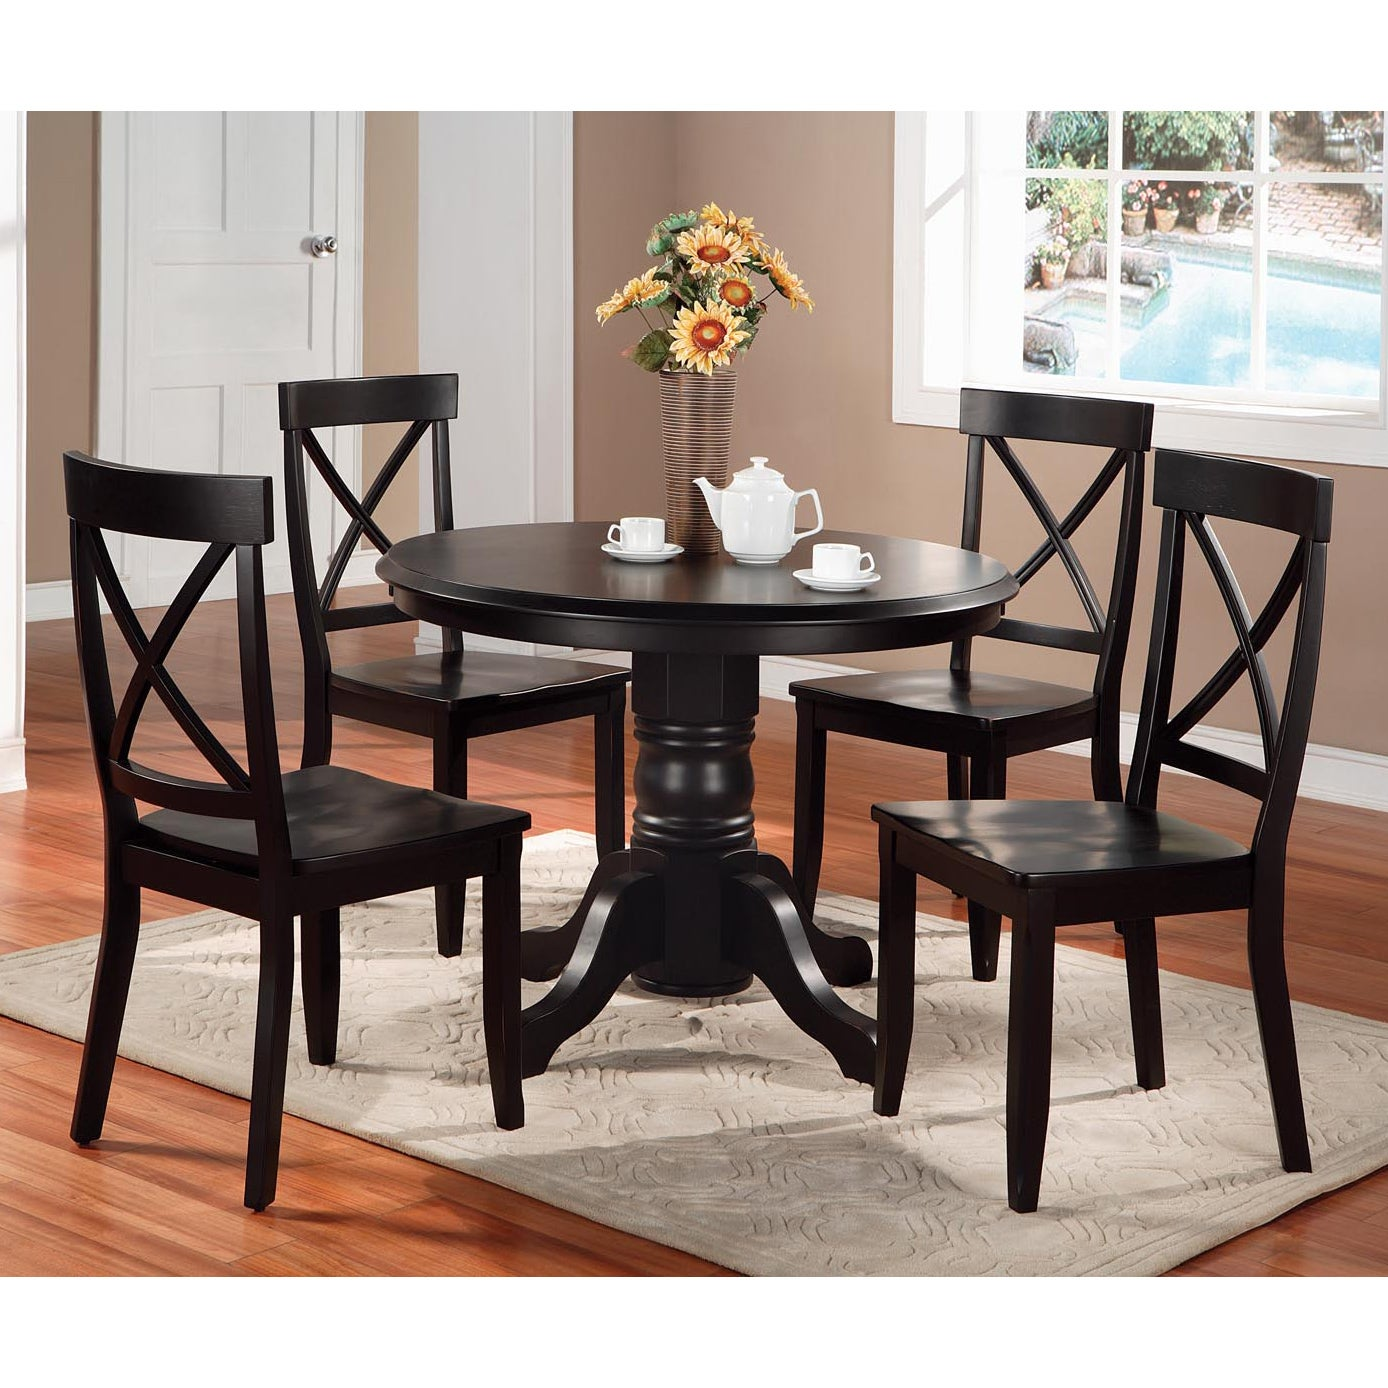 Shop Black 5 Piece Dining Furniture Set By Home Styles   On Sale   Free  Shipping Today   Overstock.com   6626642